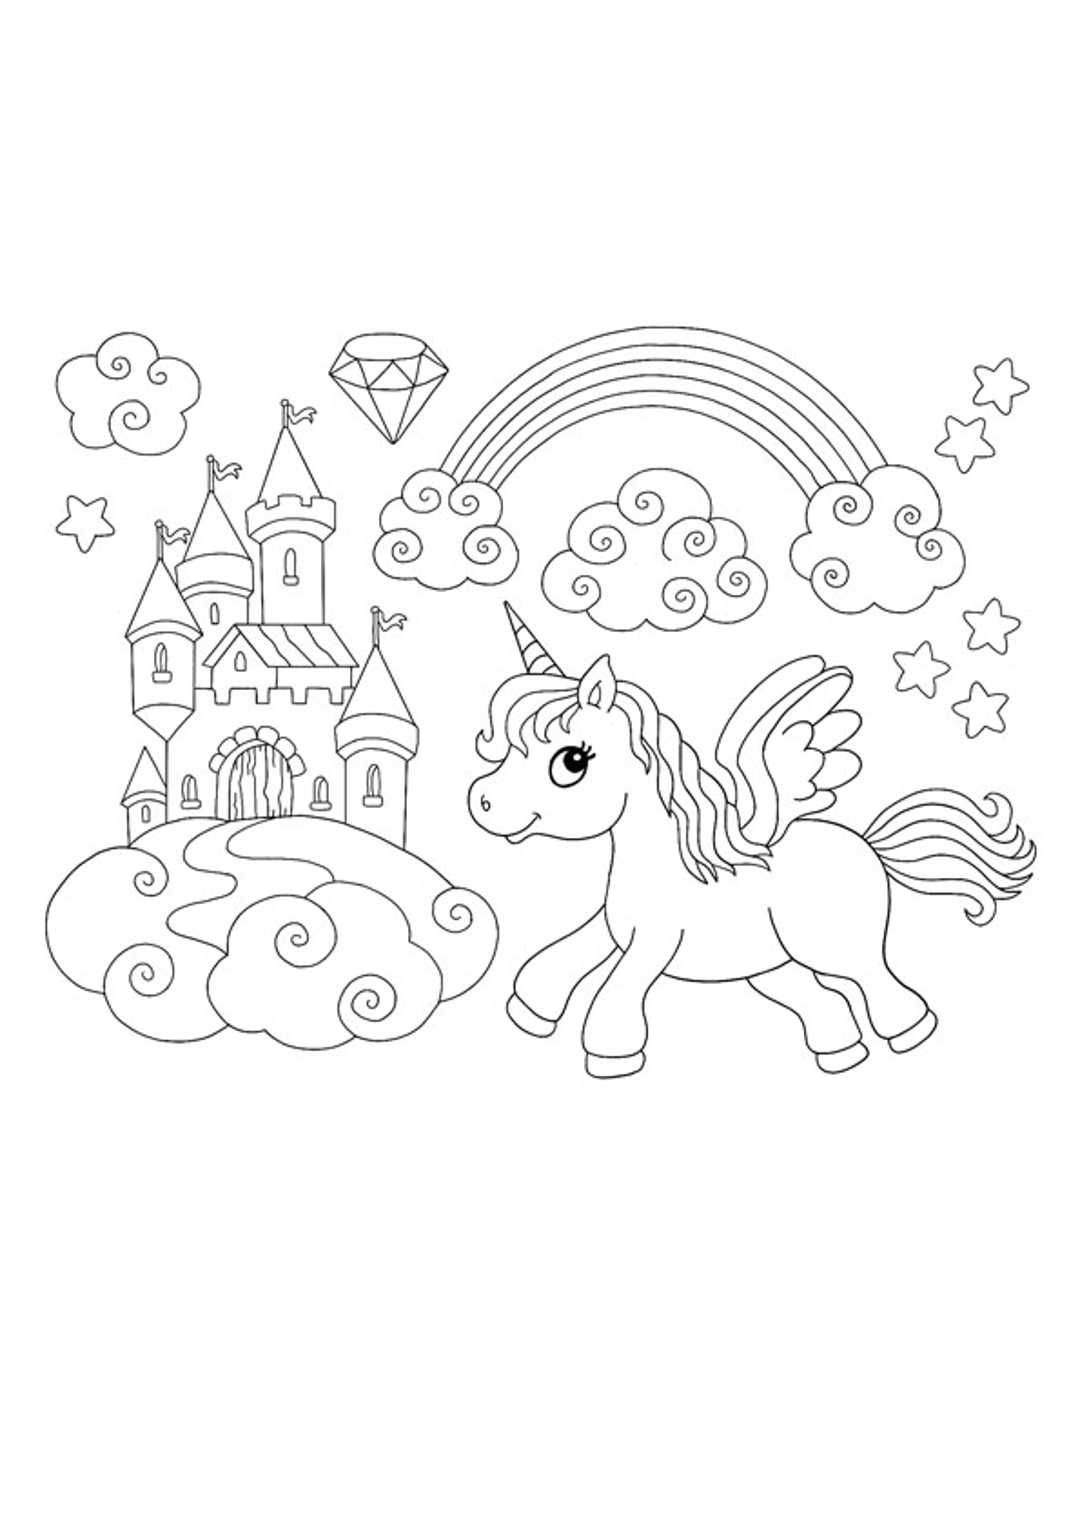 Flying Unicorn Coloring Pages In 2020 Unicorn Coloring Pages Mermaid Coloring Pages Free Printable Coloring Sheets